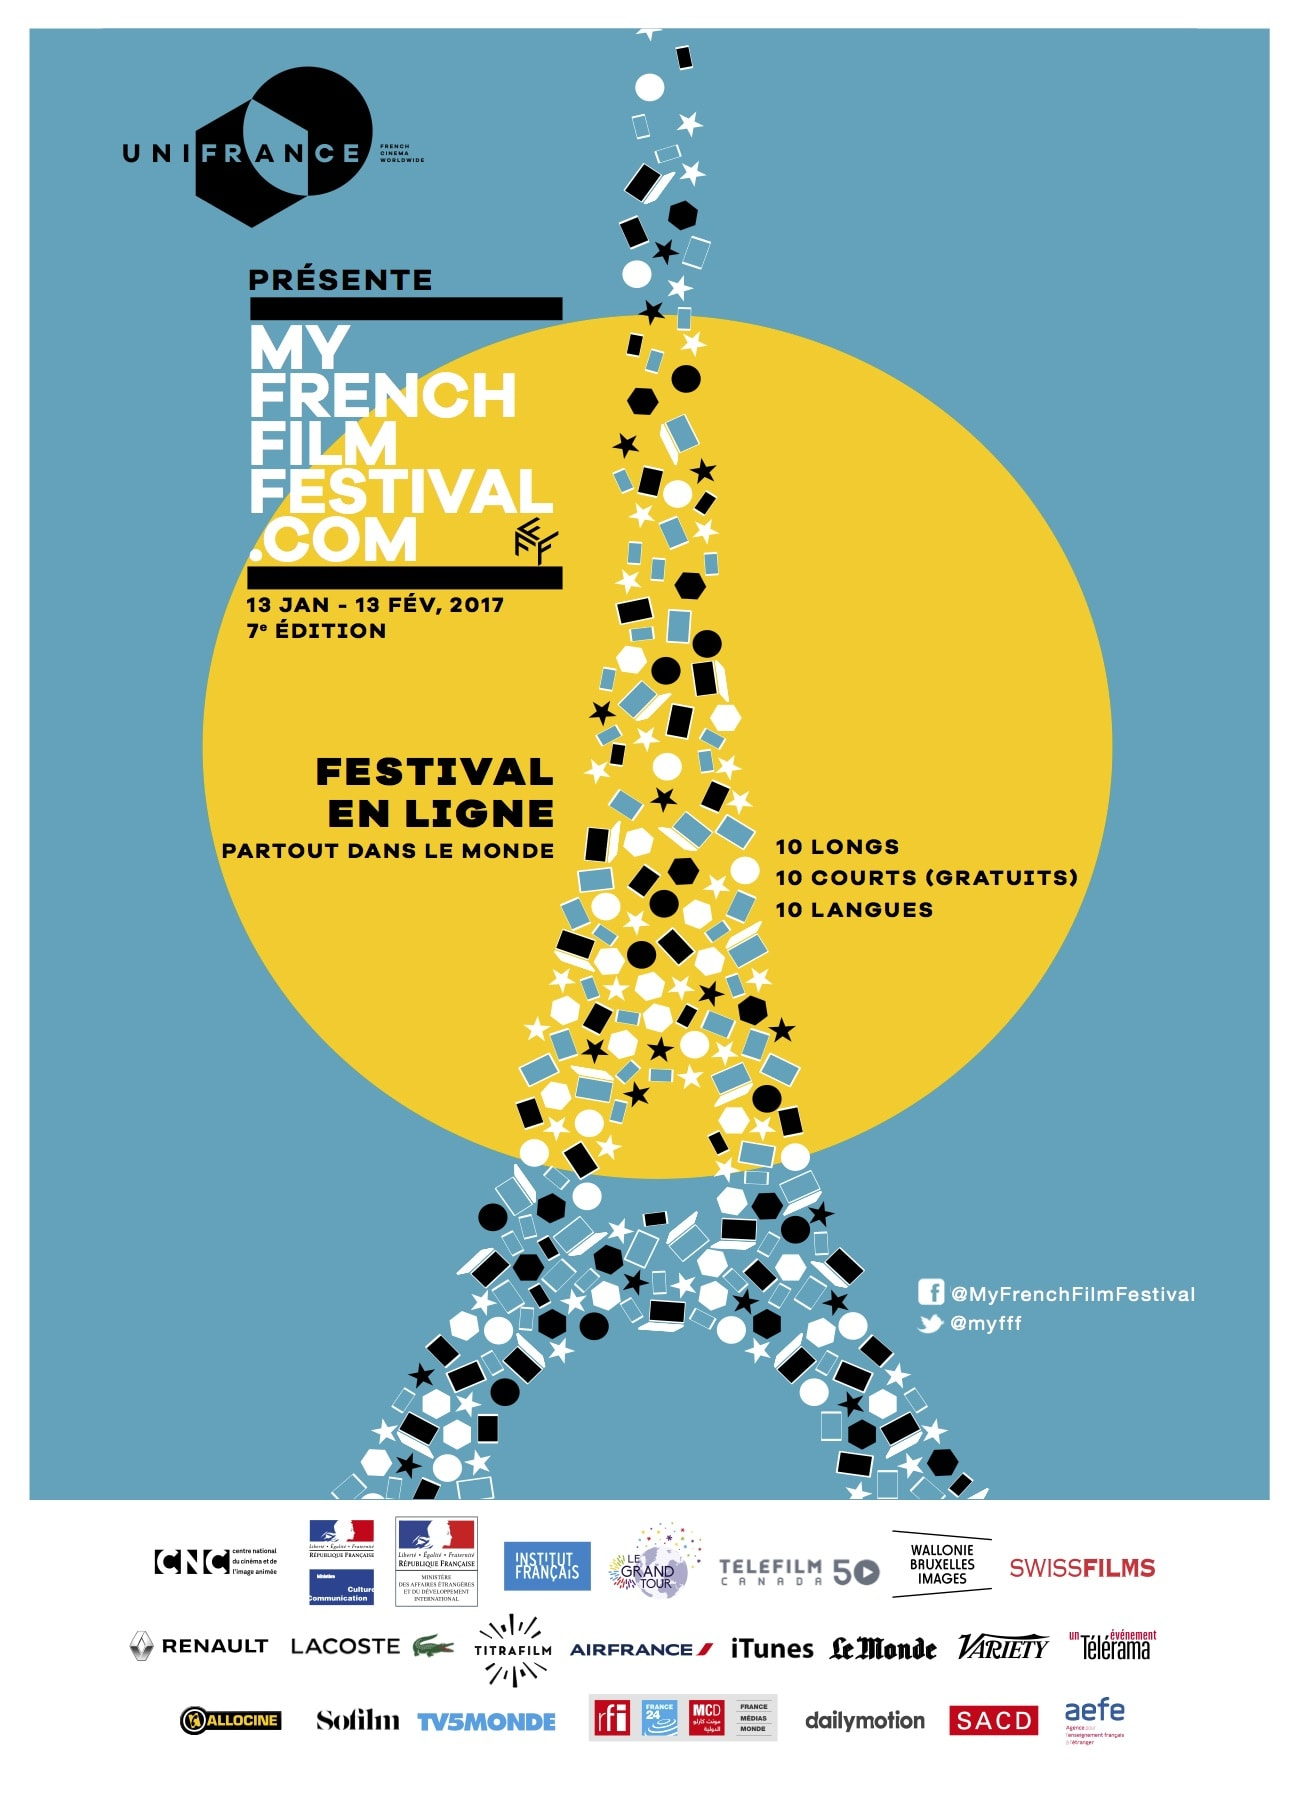 My French Film Festival 2017 affiche